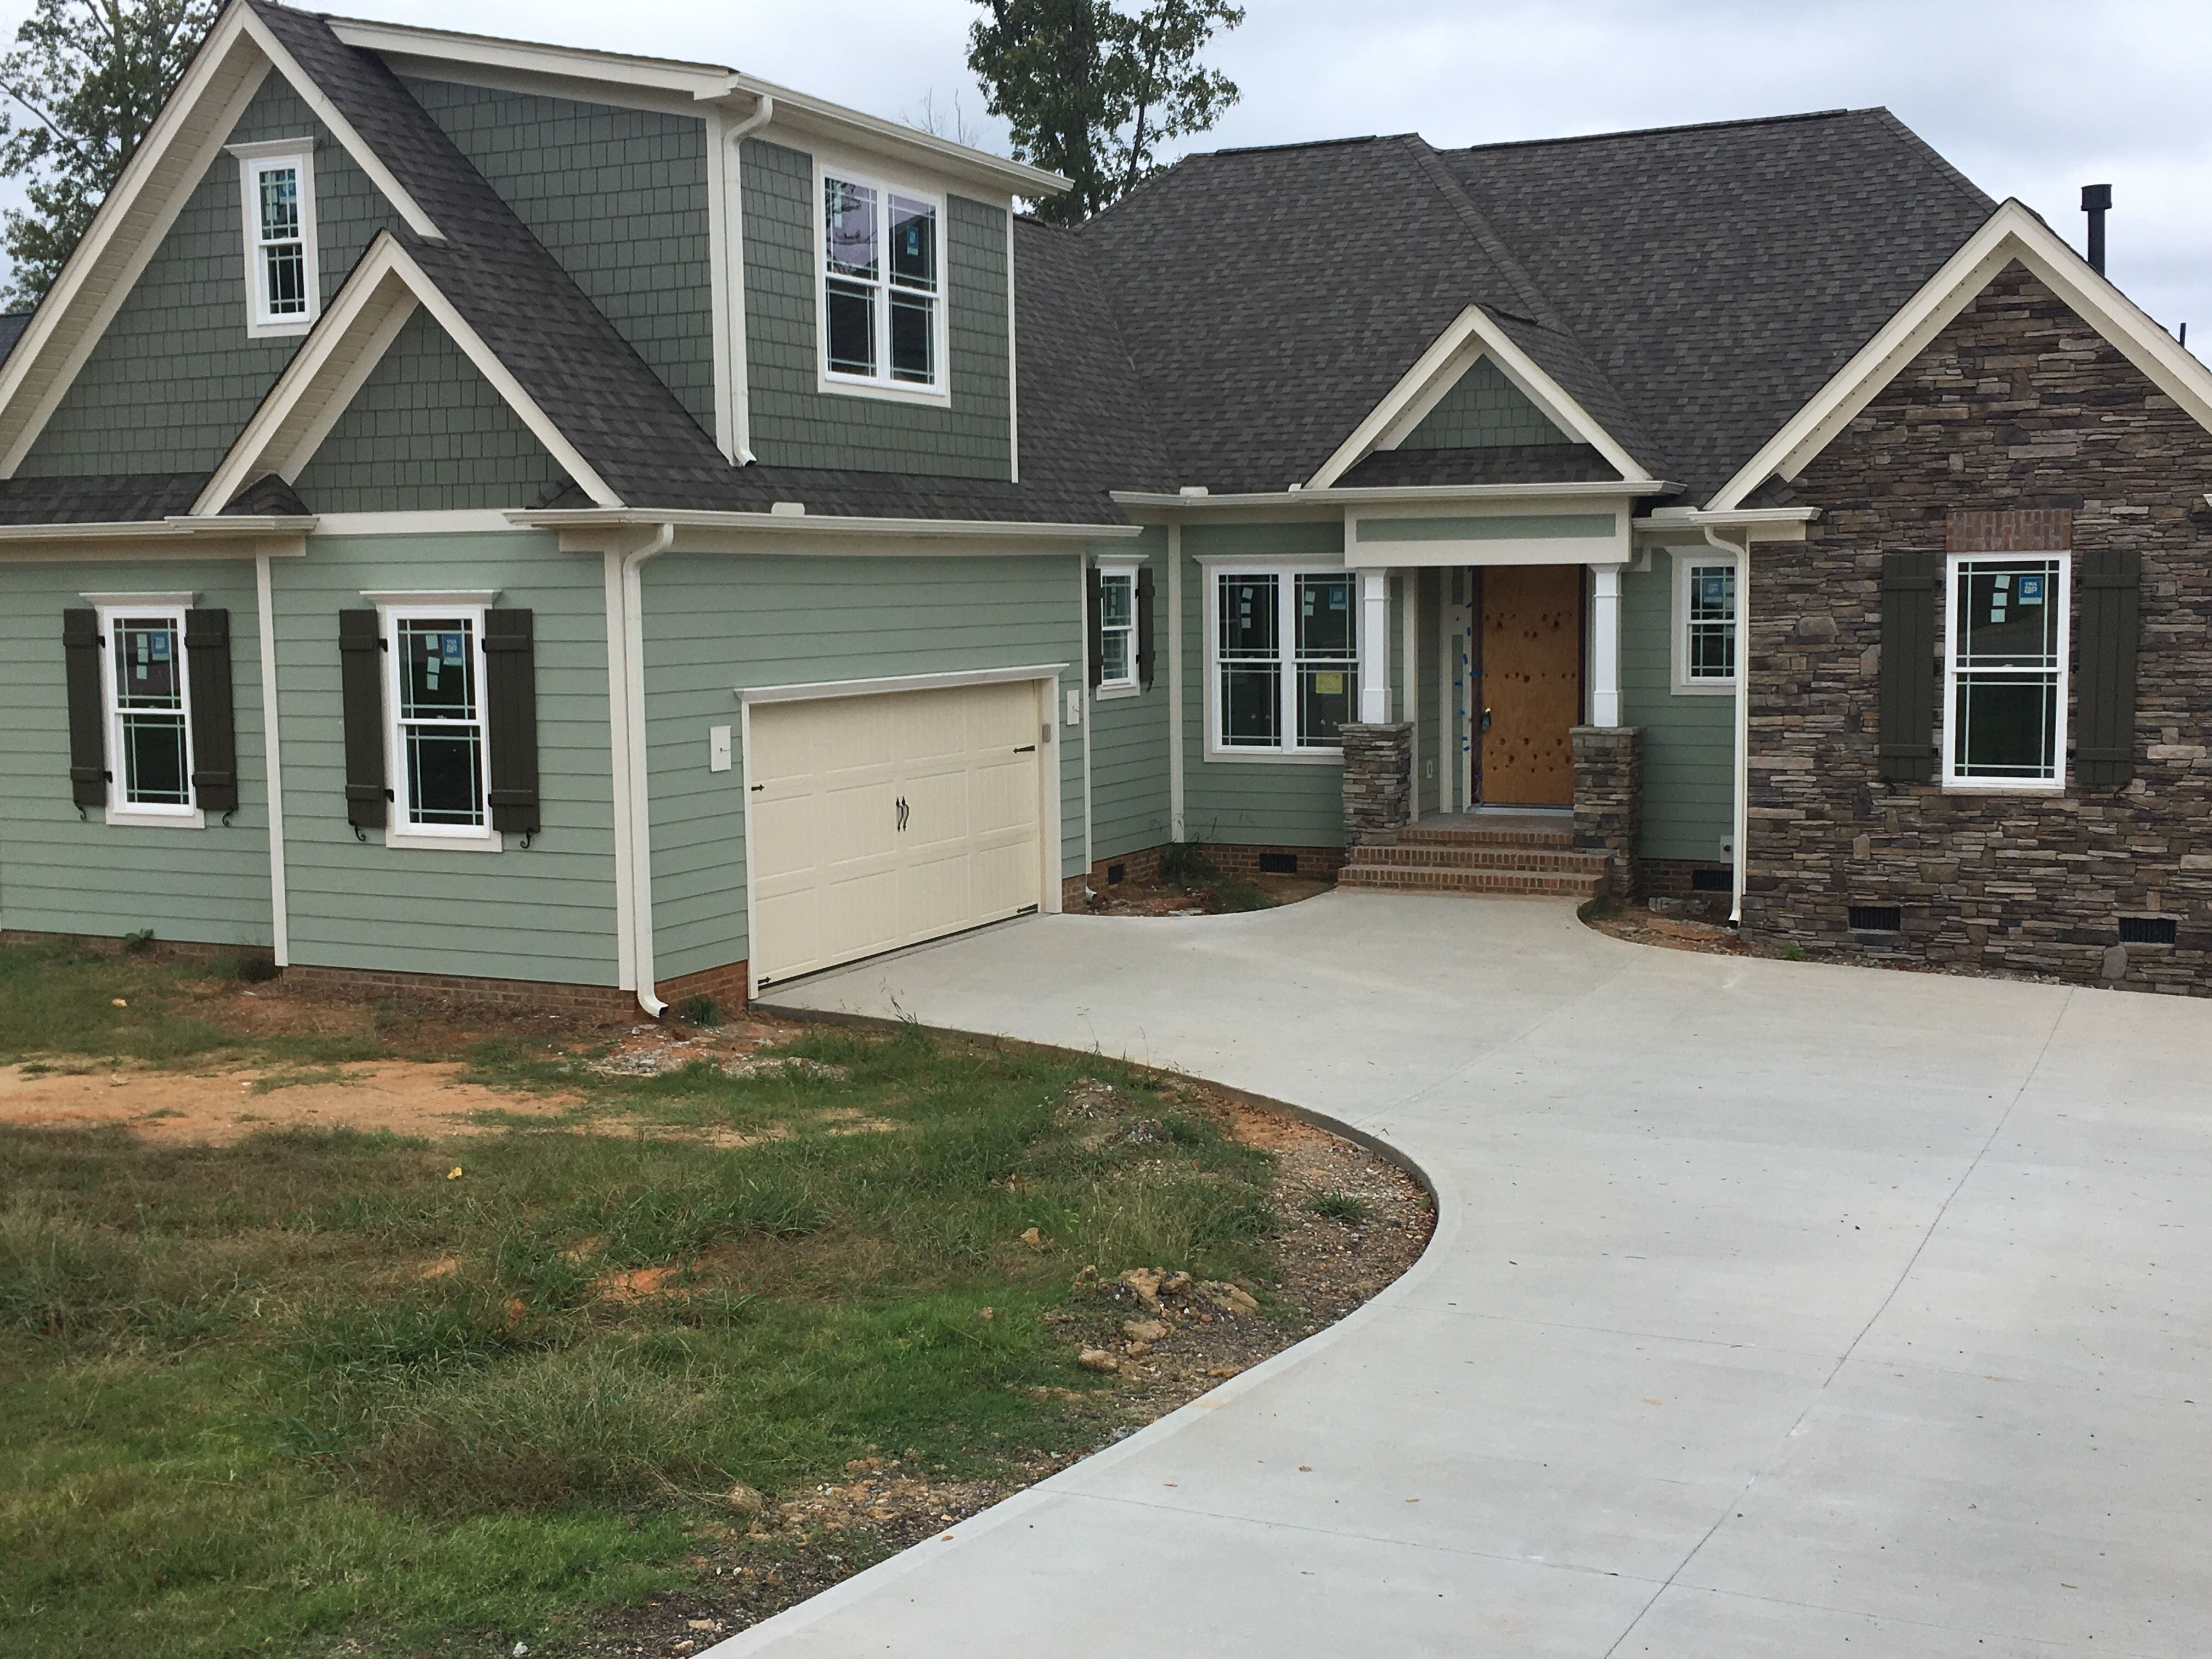 Newly Build Craftsman Style Home With Composite Exterior Shutters